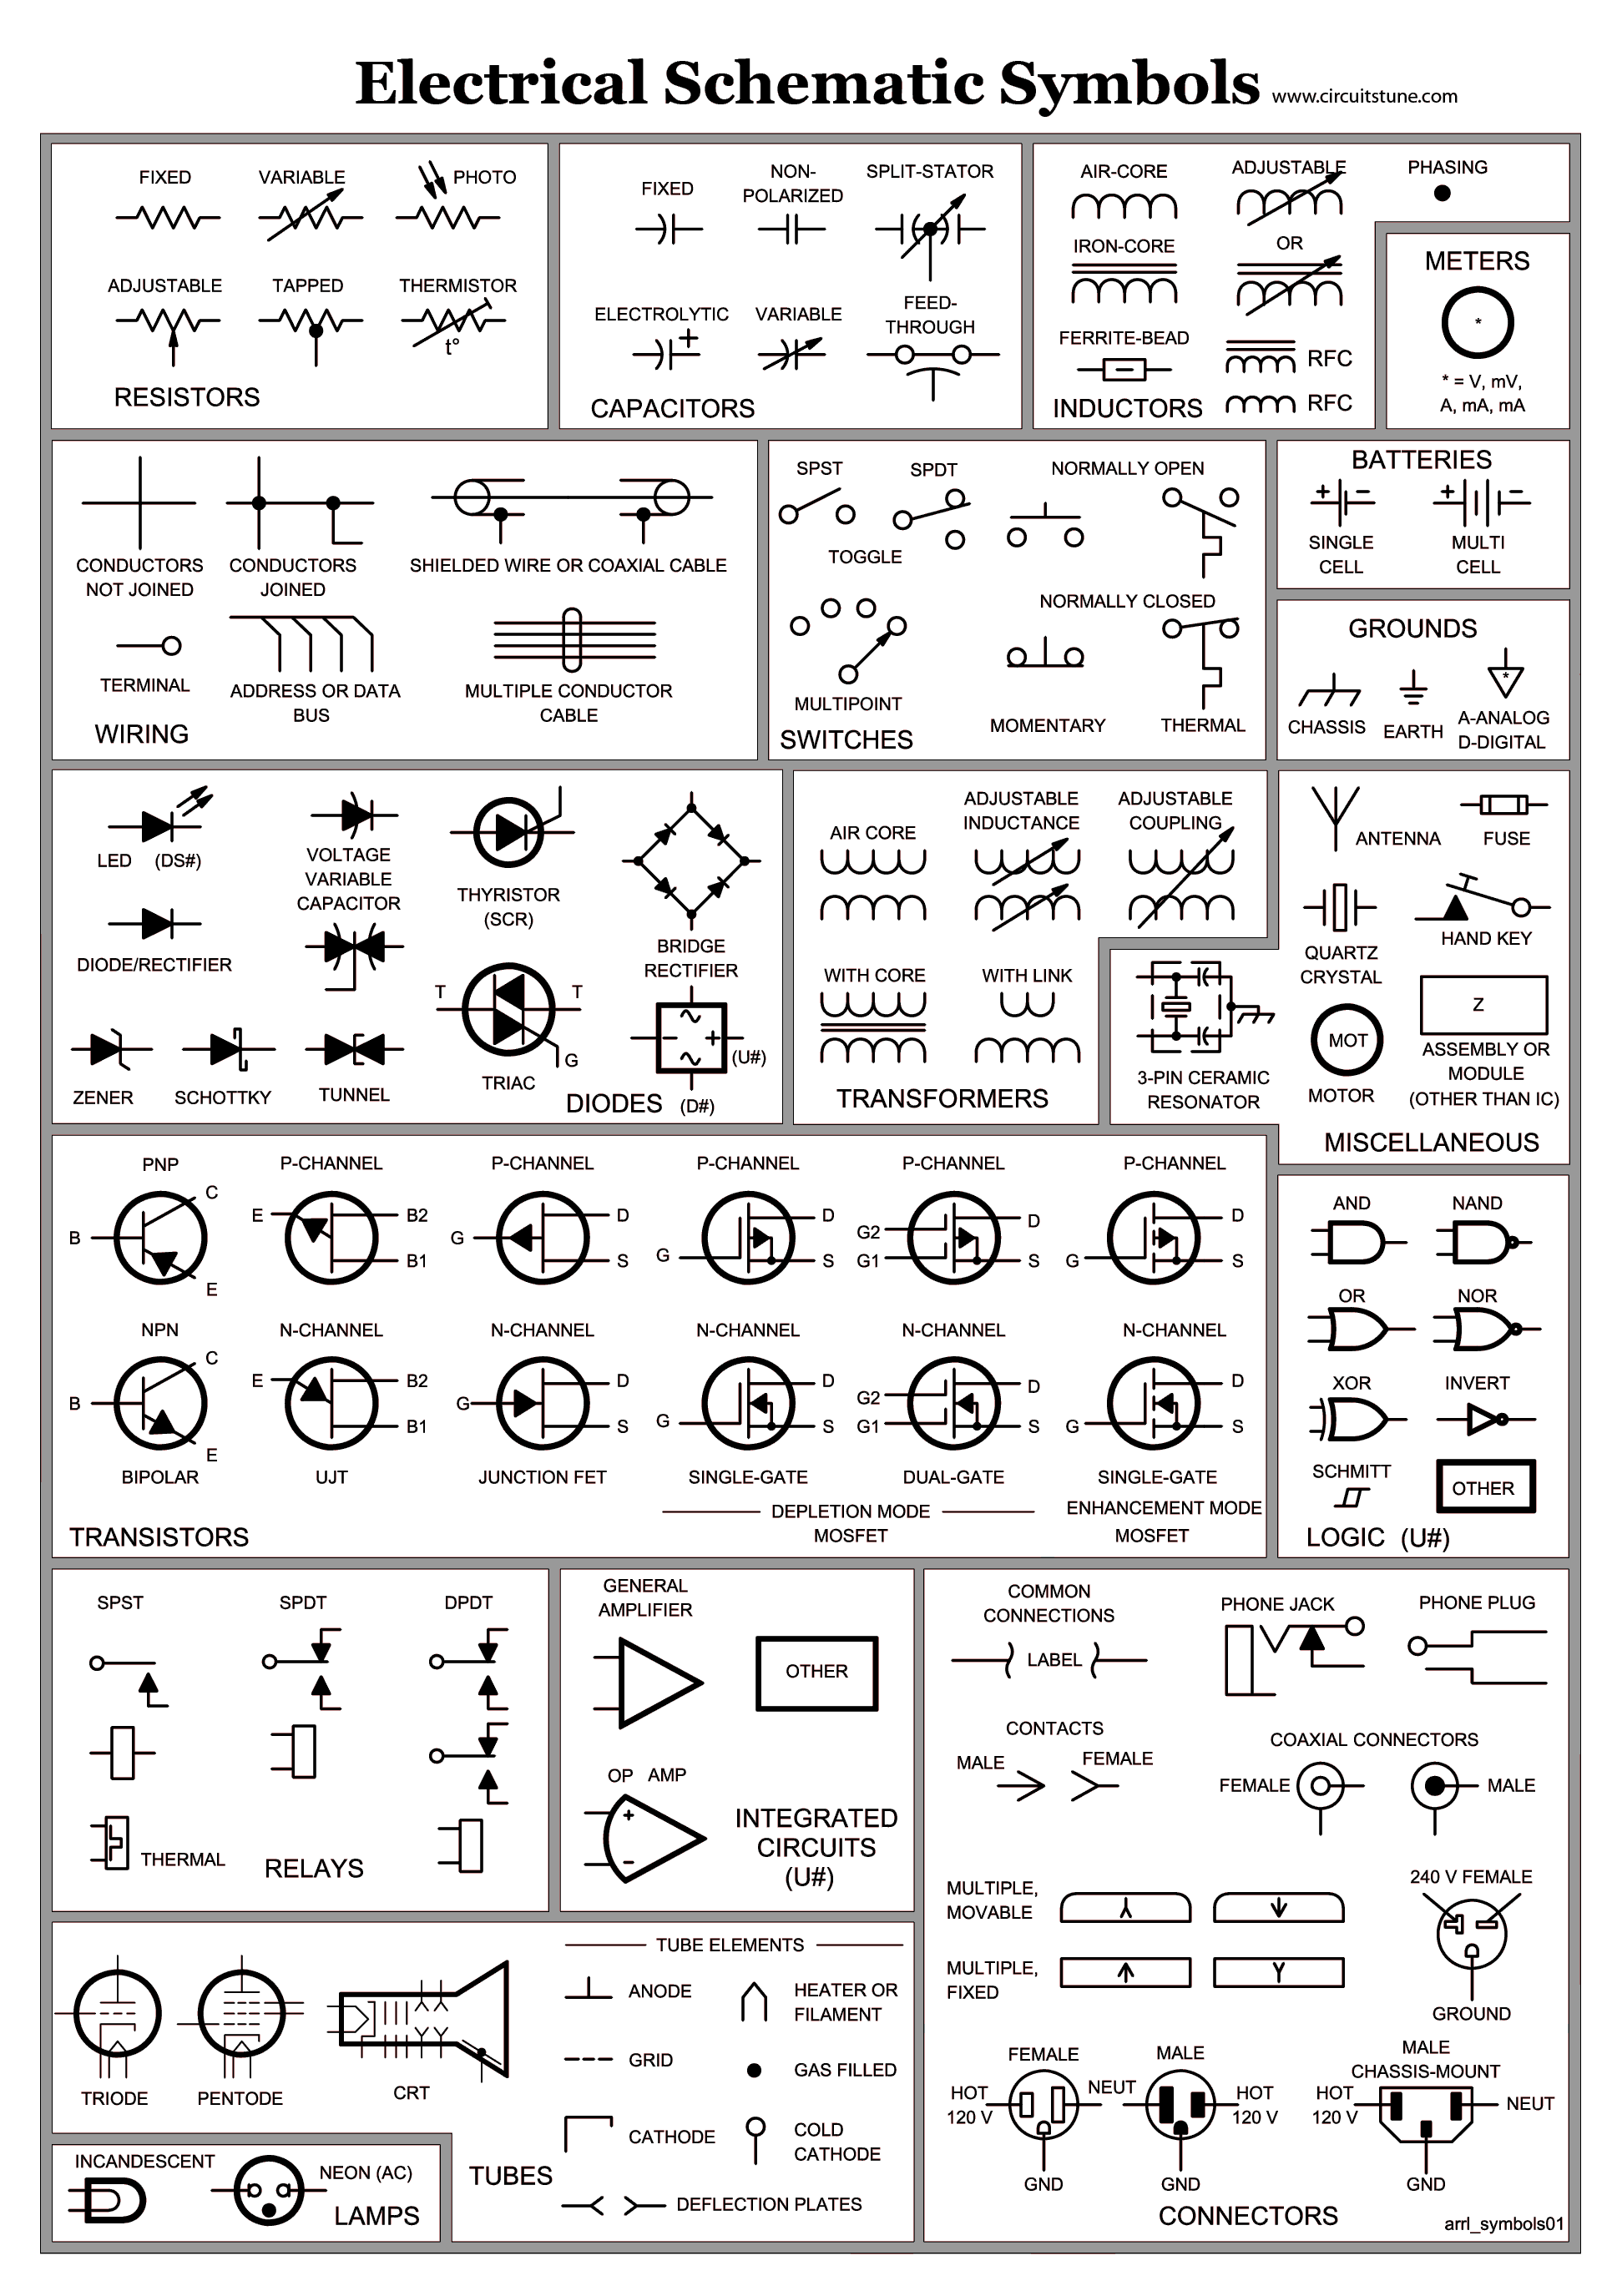 Electrical schematic symbols wire diagram symbols automotive wiring electrical schematic symbols wire diagram symbols automotive wiring schematic asfbconference2016 Gallery